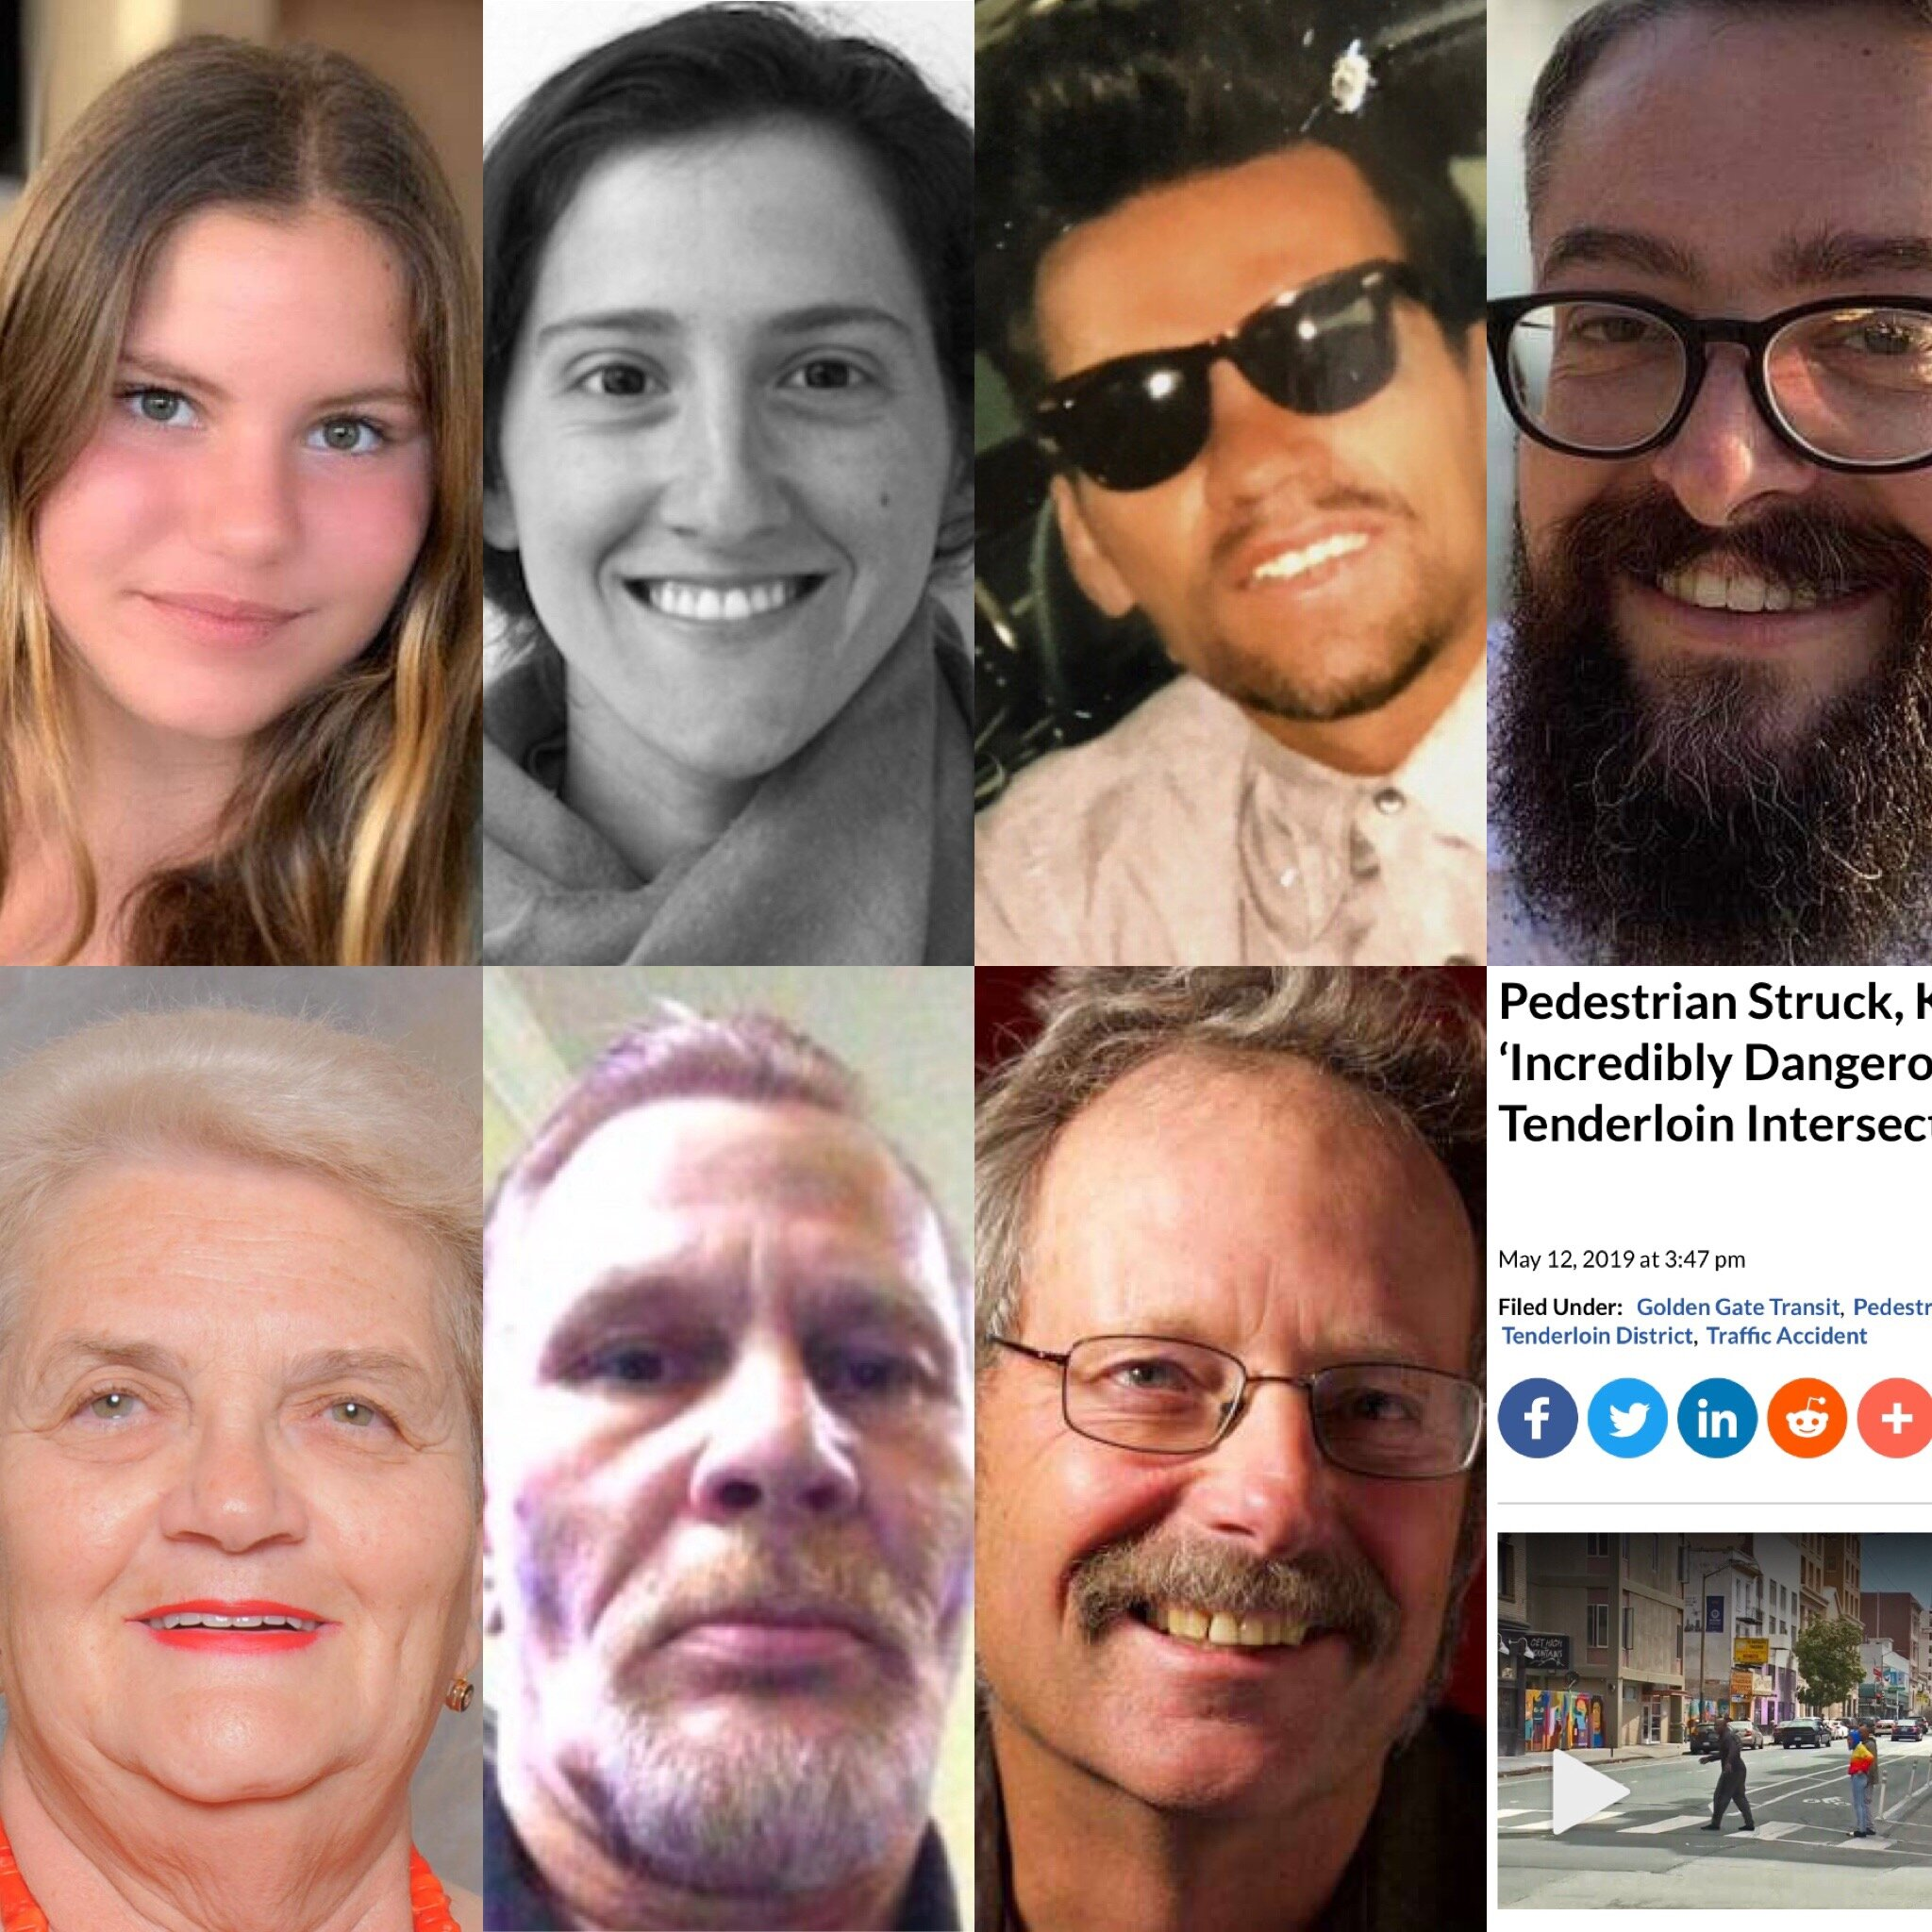 Just some of the people killed by drivers of motor vehicles in San Francisco in the past year